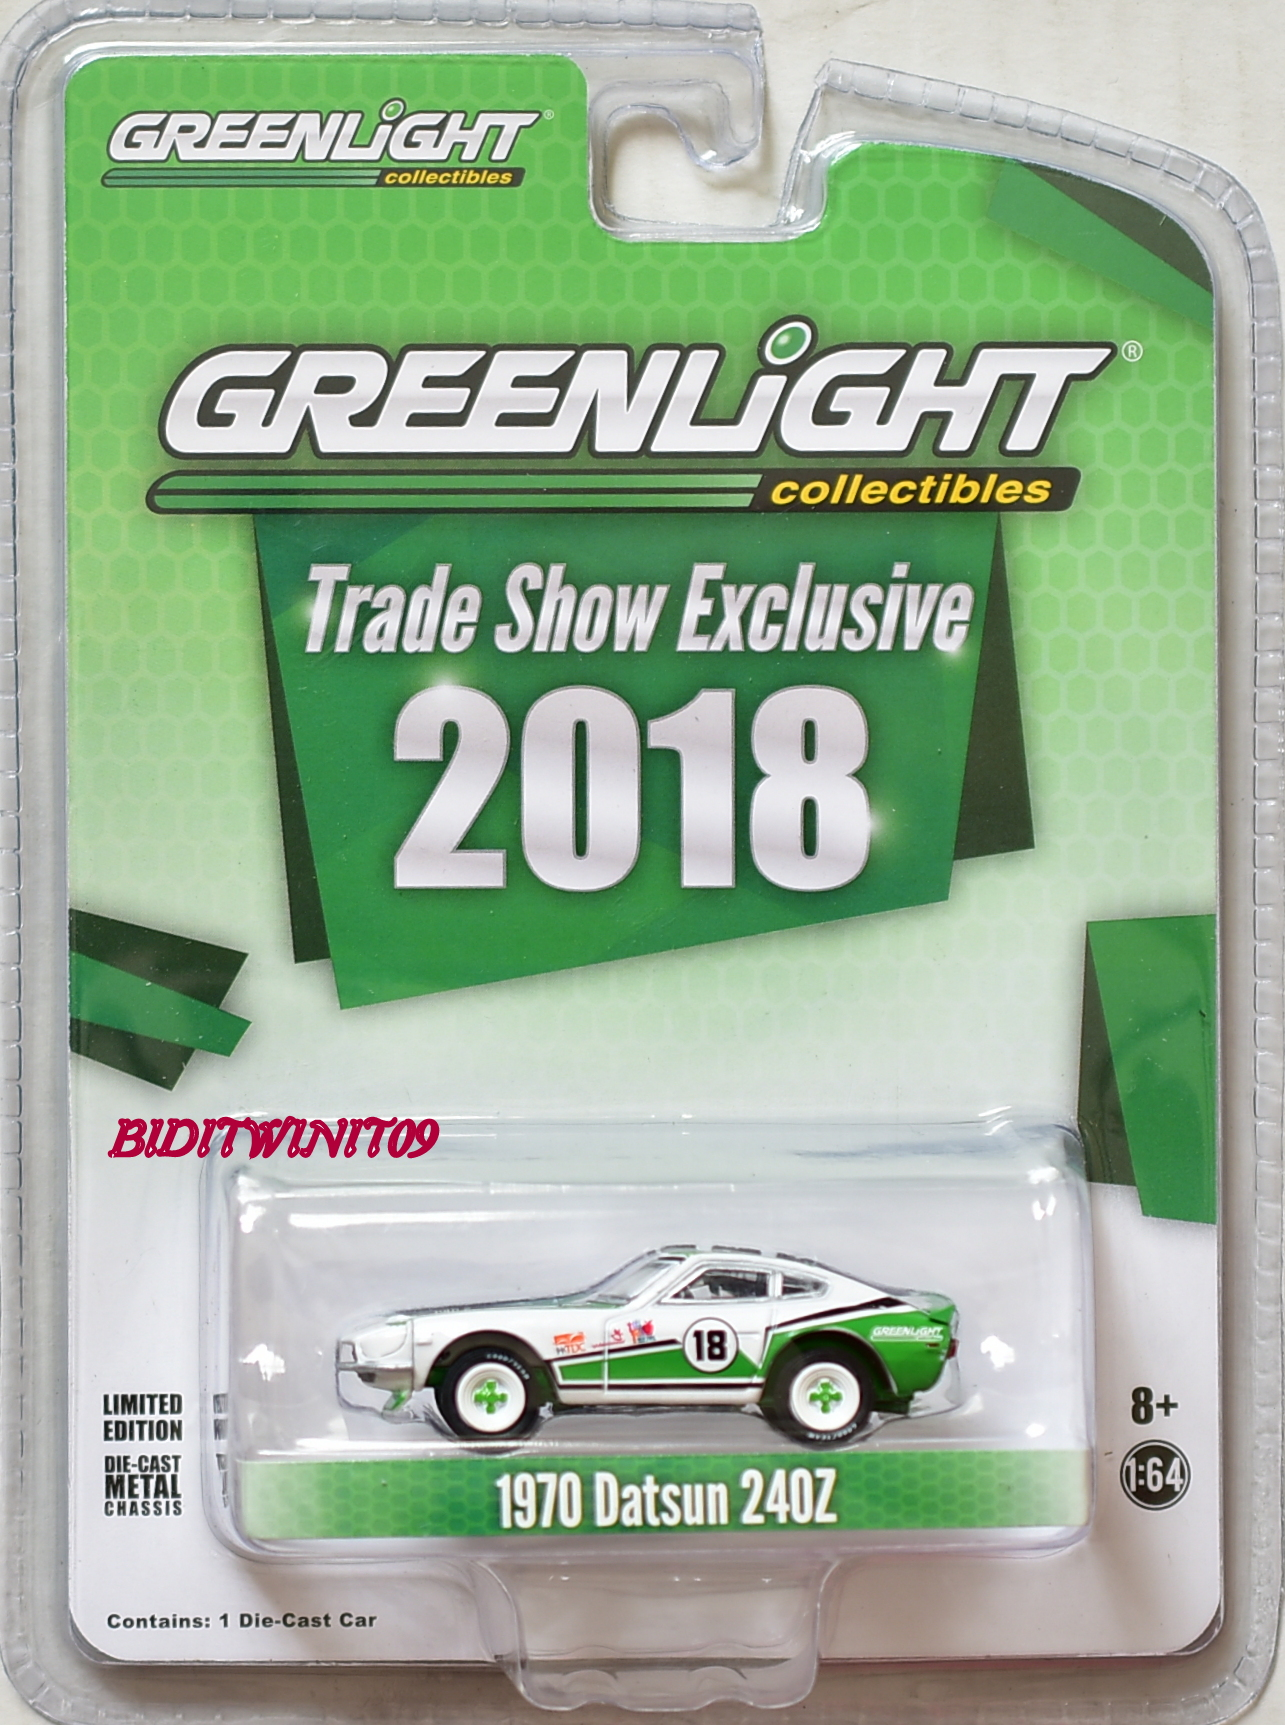 GREENLIGHT TRADE SHOW EXCLUSIVE SCALE 1:64 1970 DATSUN 240Z